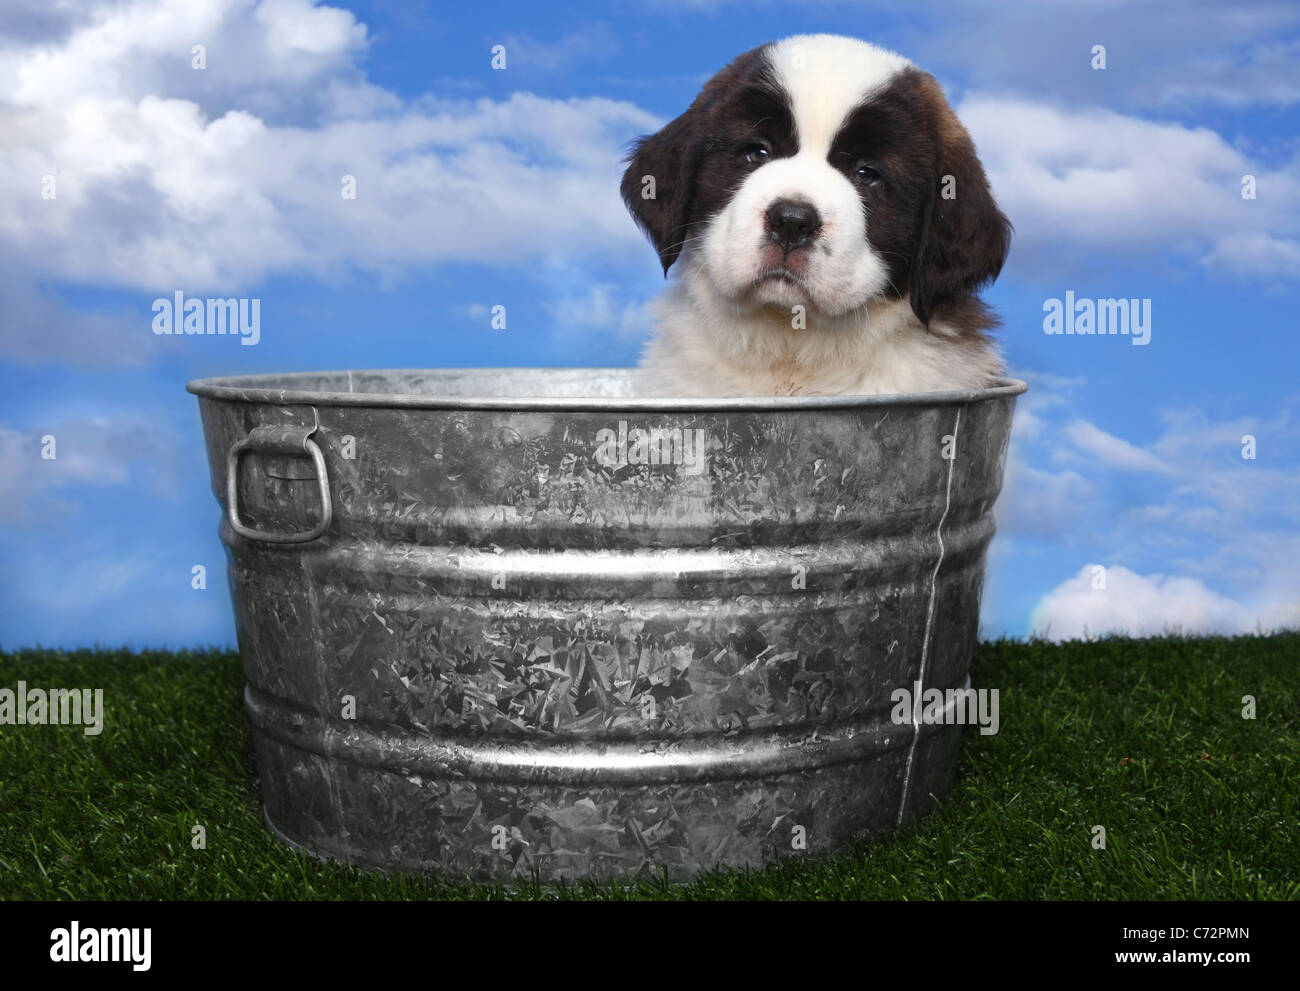 Adorable Saint Bernard Puppy Portrait Photo Stock